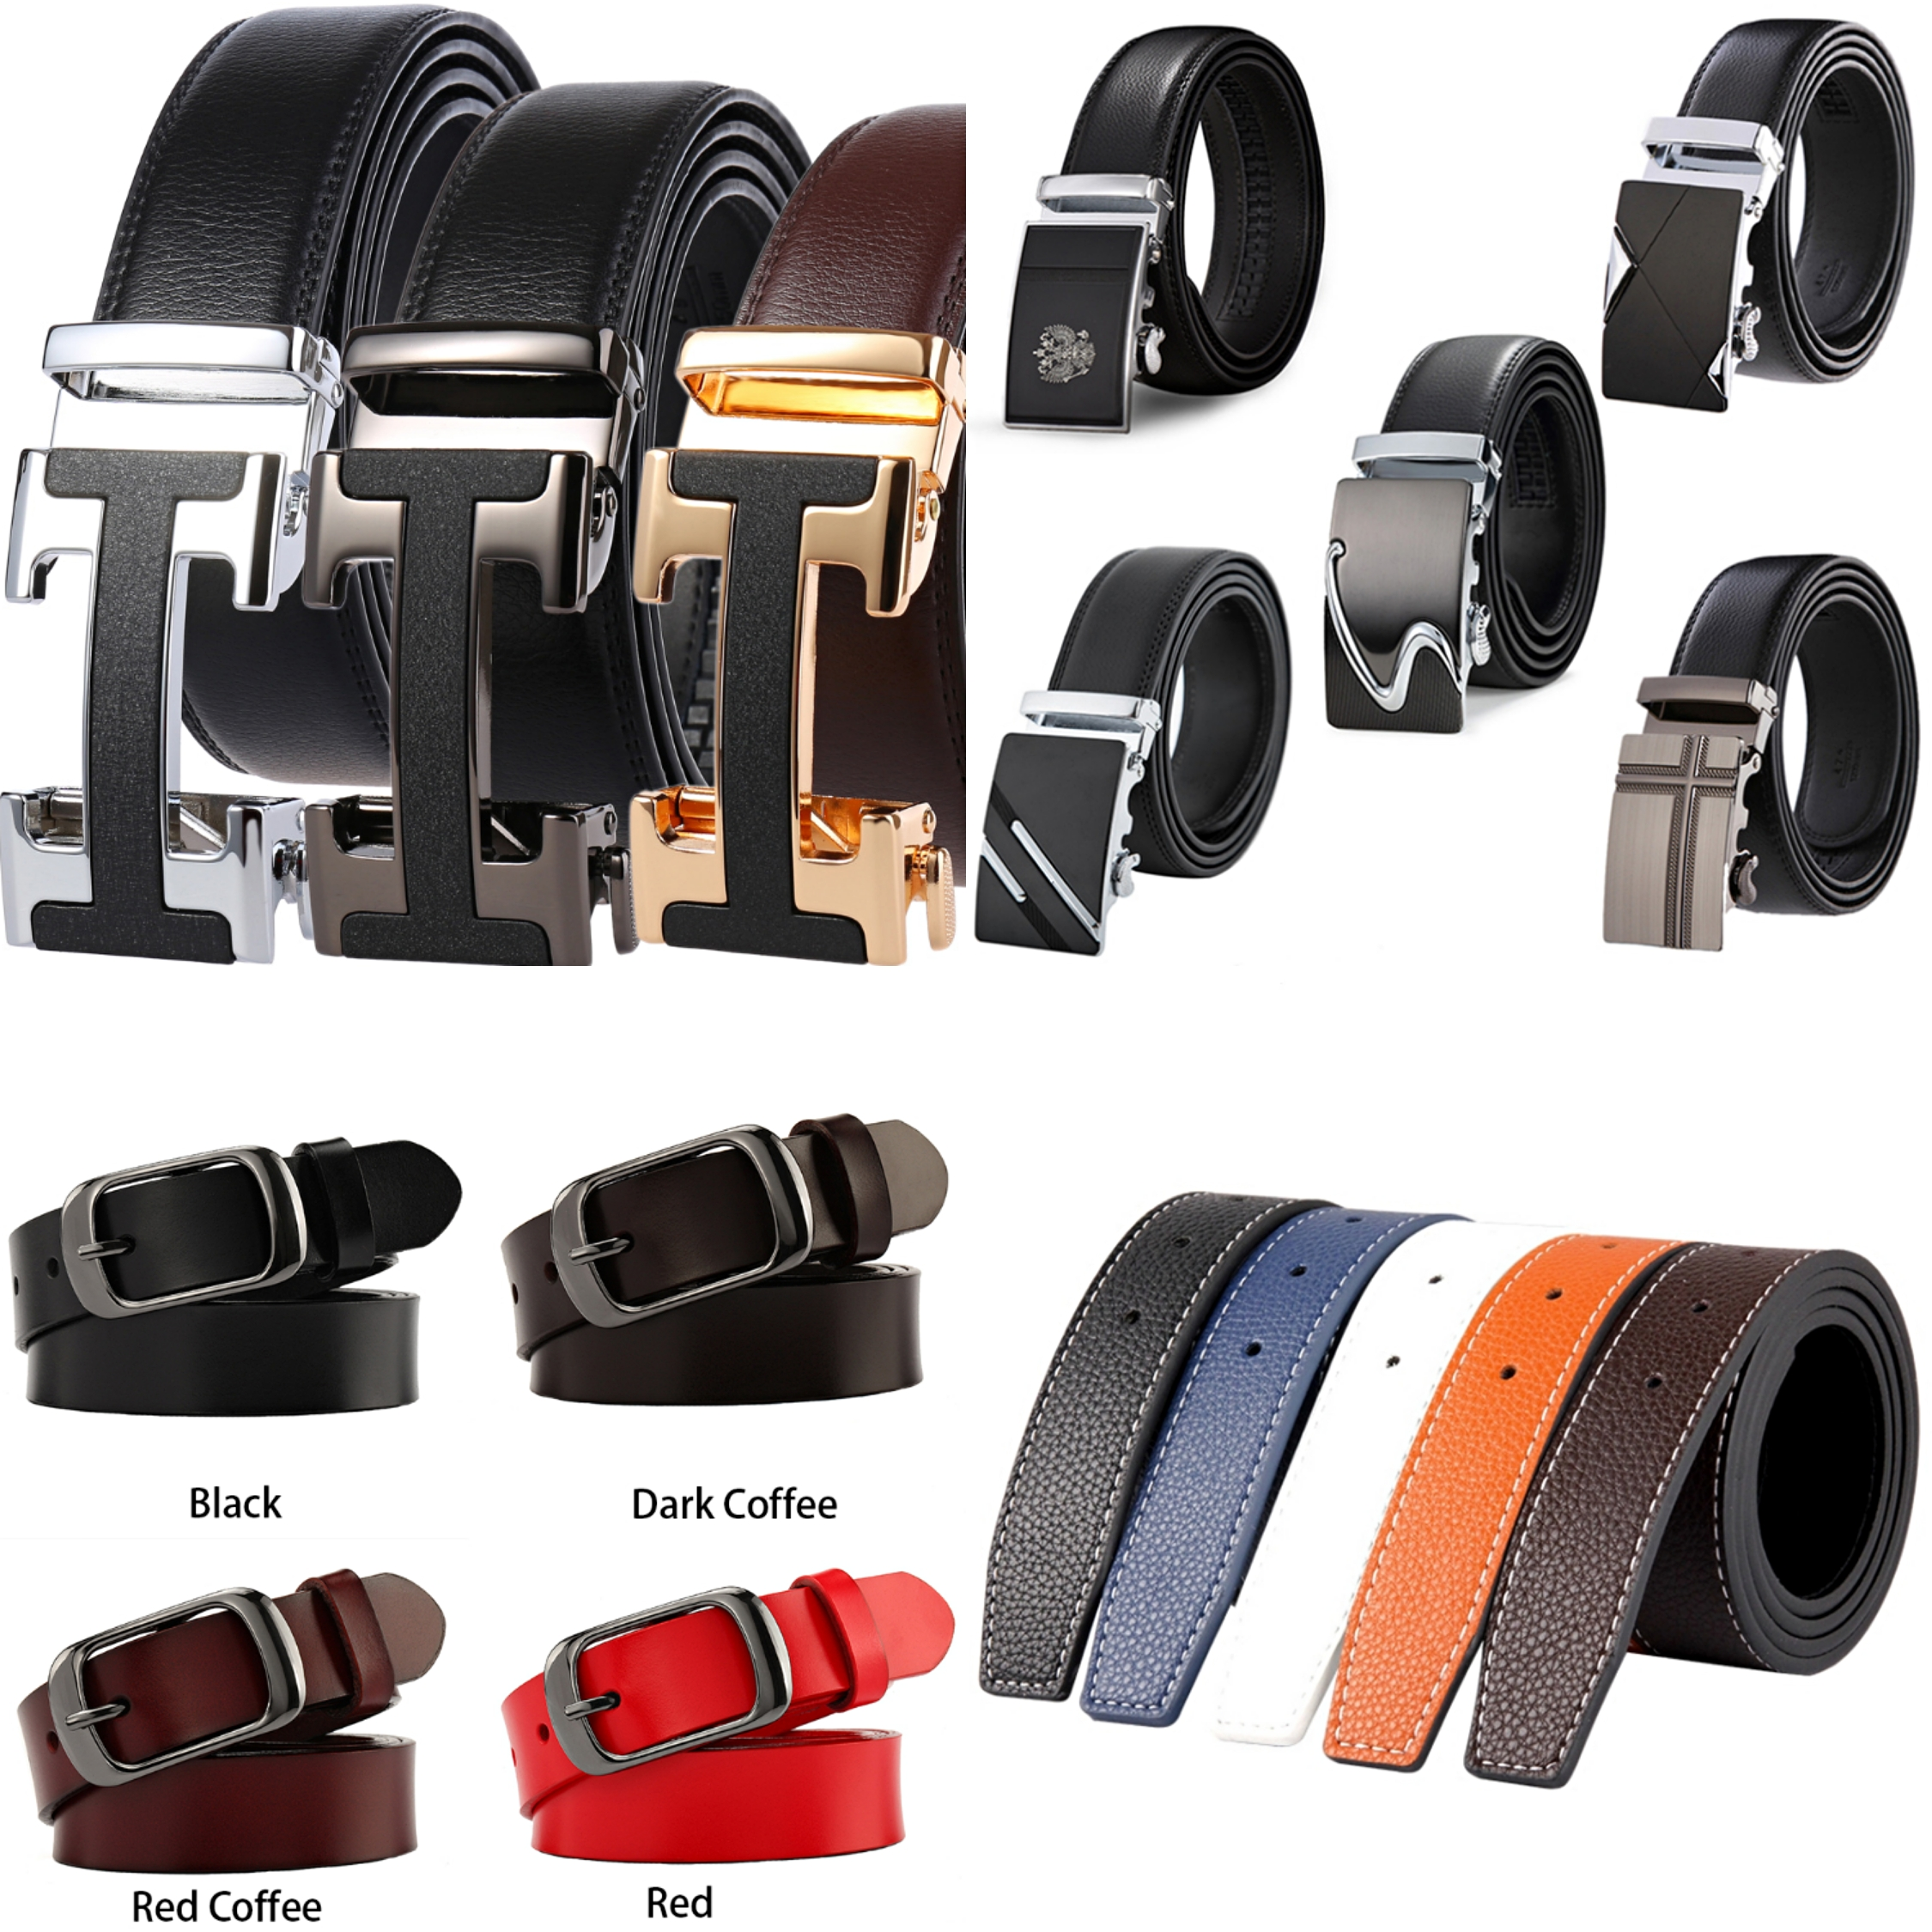 Male Belt New Designer Men's Belts Luxury Genuine Leather Fashion Belt Luxury Brand For Men Women High Quality Automatic Buckle